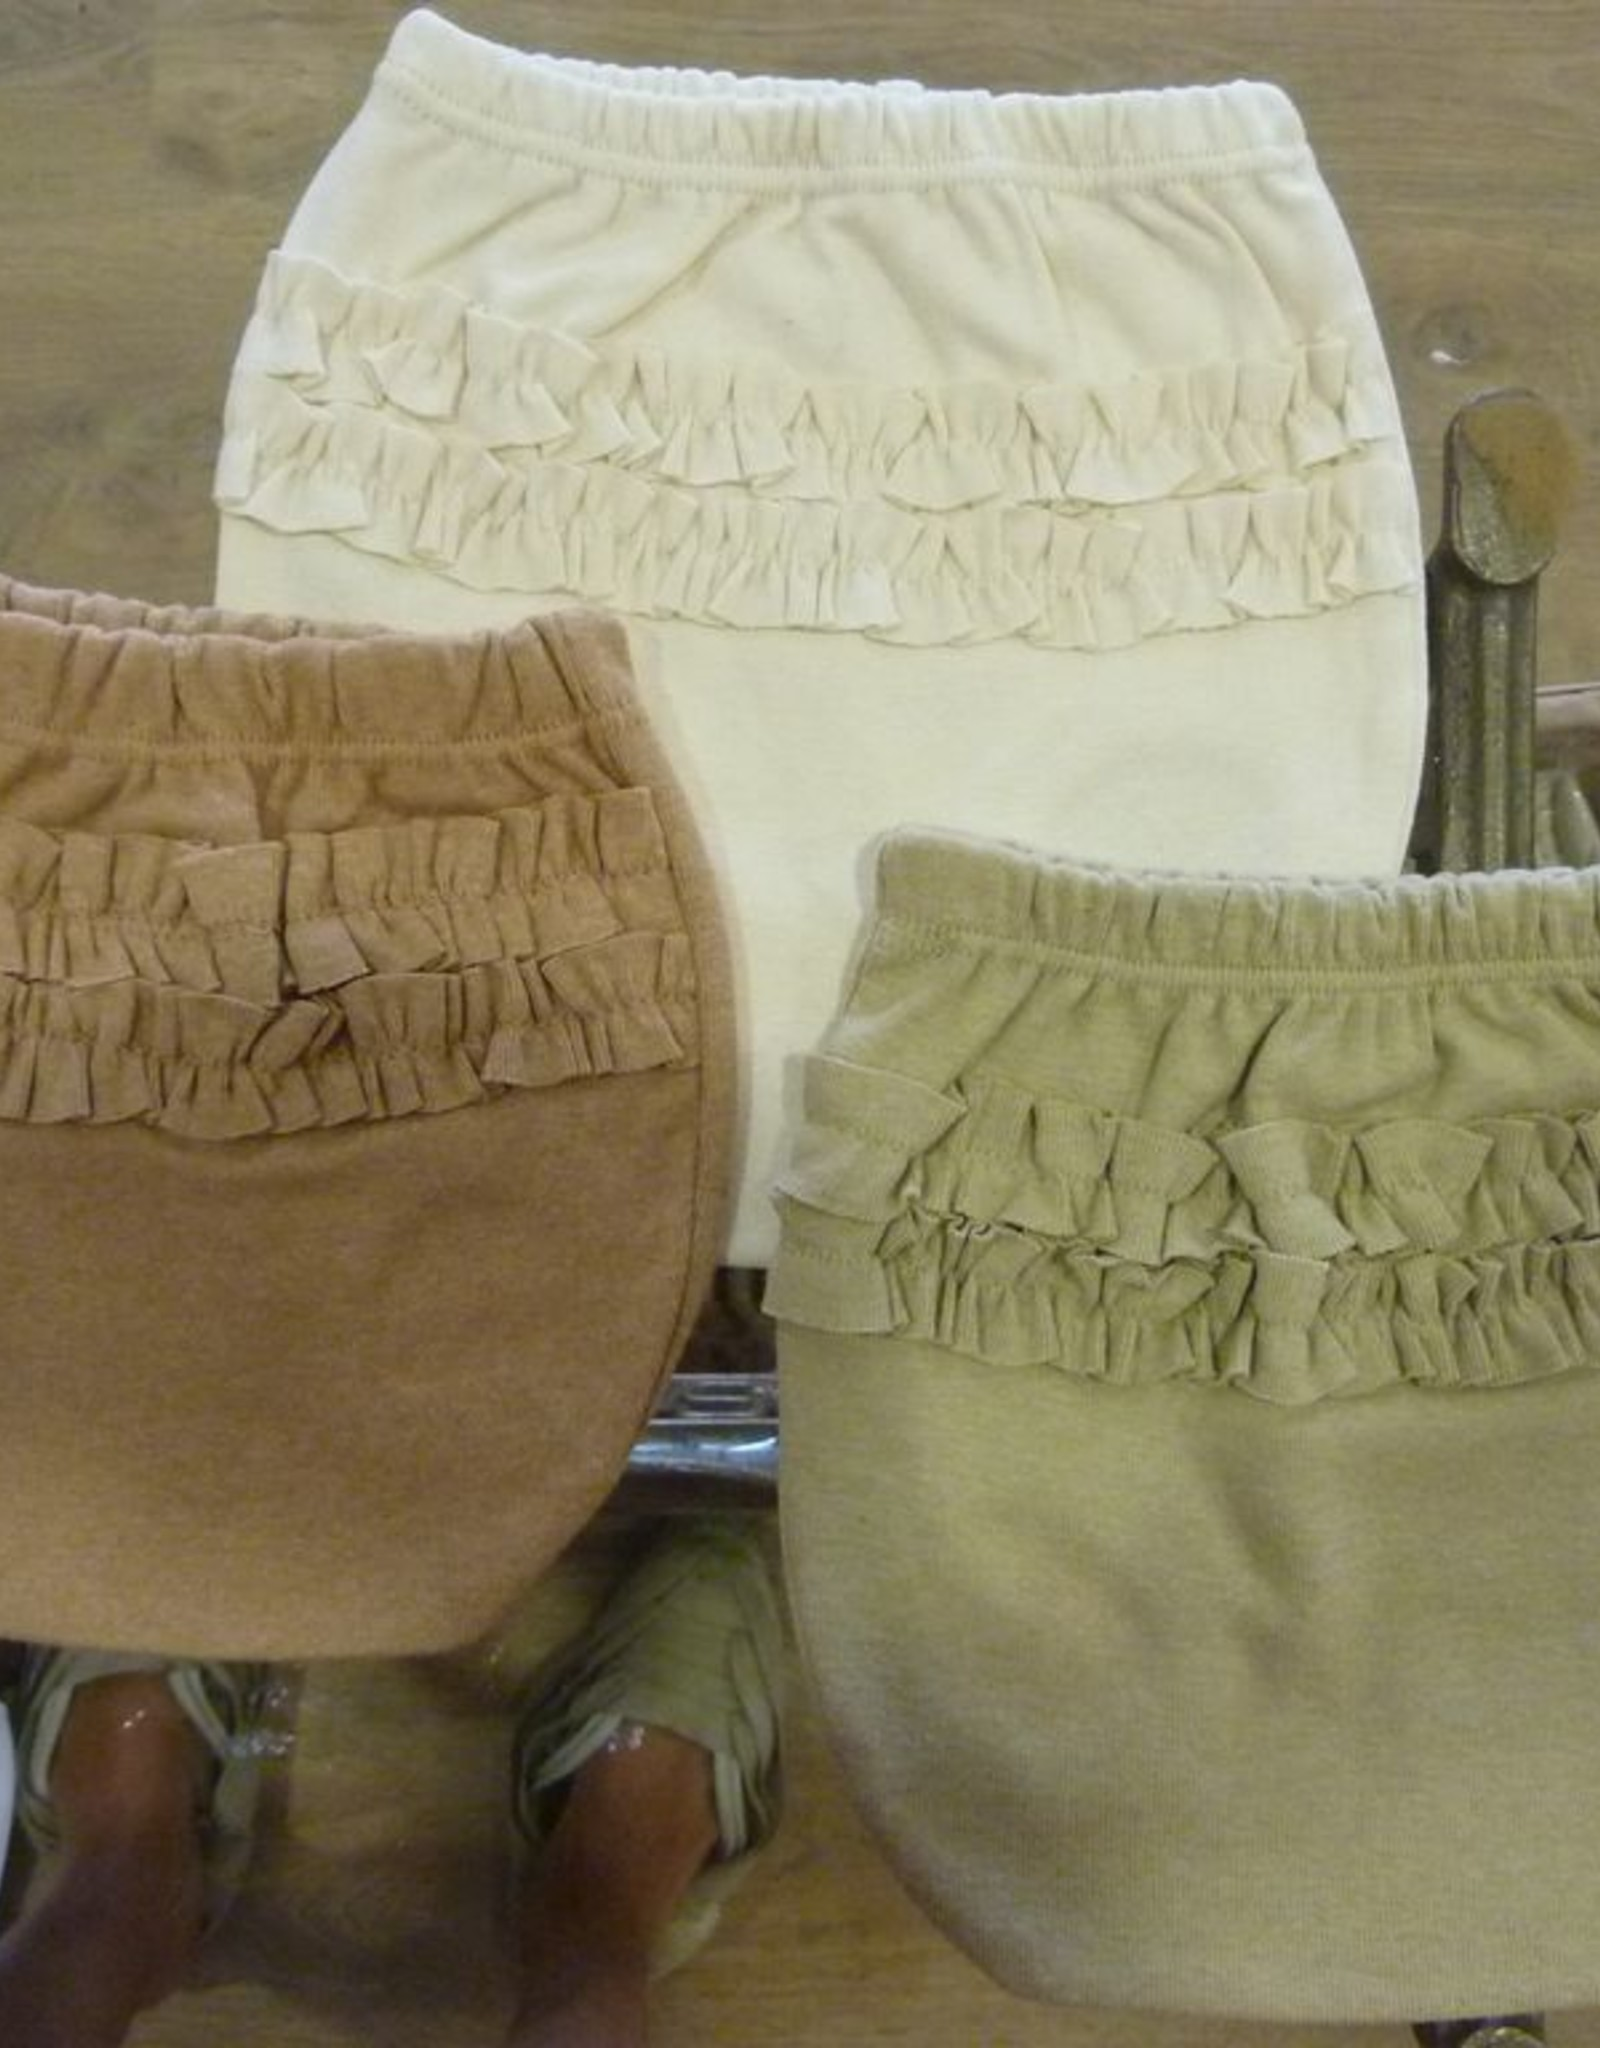 Baby diaper with frills.åÊ sizes 12, 18 months.